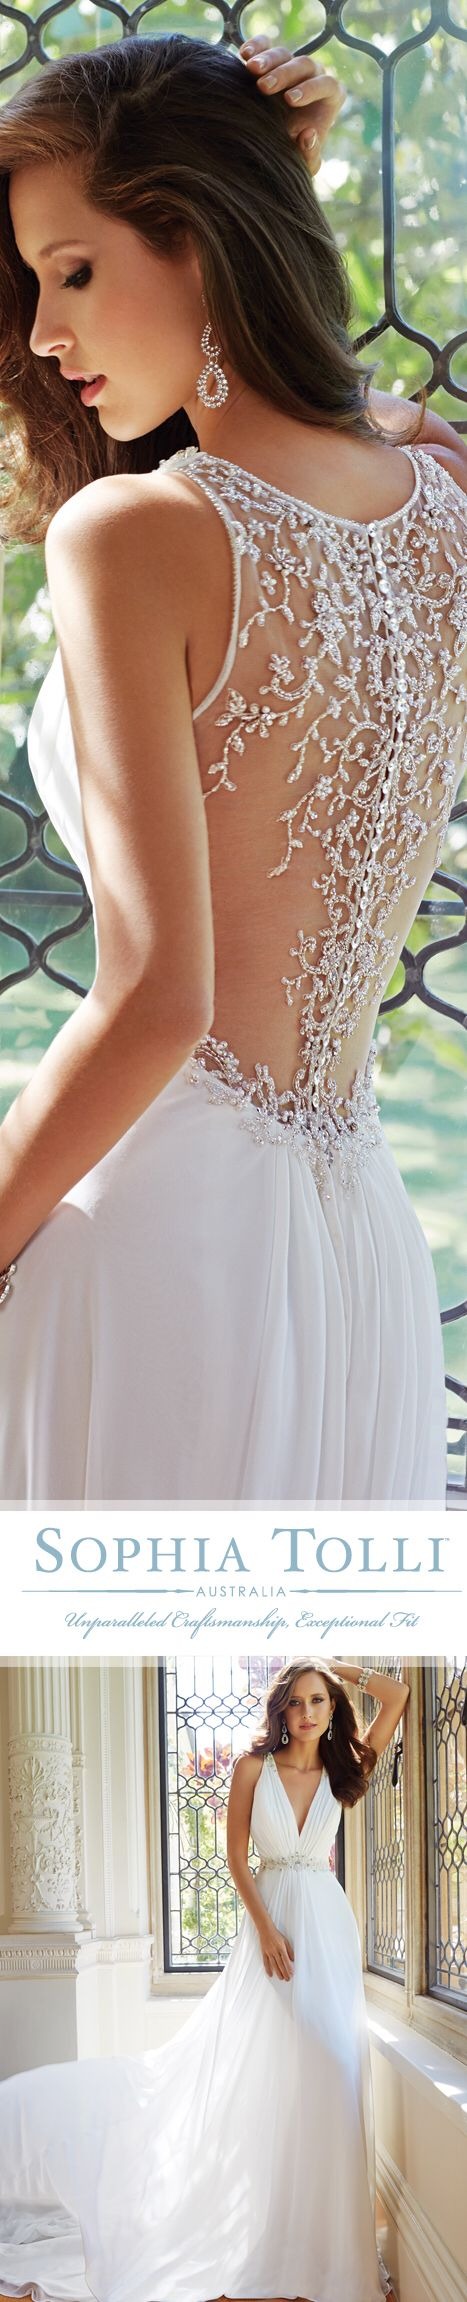 Image from http://www.fashionuptrend.com/wp-content/uploads/2014/12/my-dress-for-the-beach-wedding-in-2017.jpg.